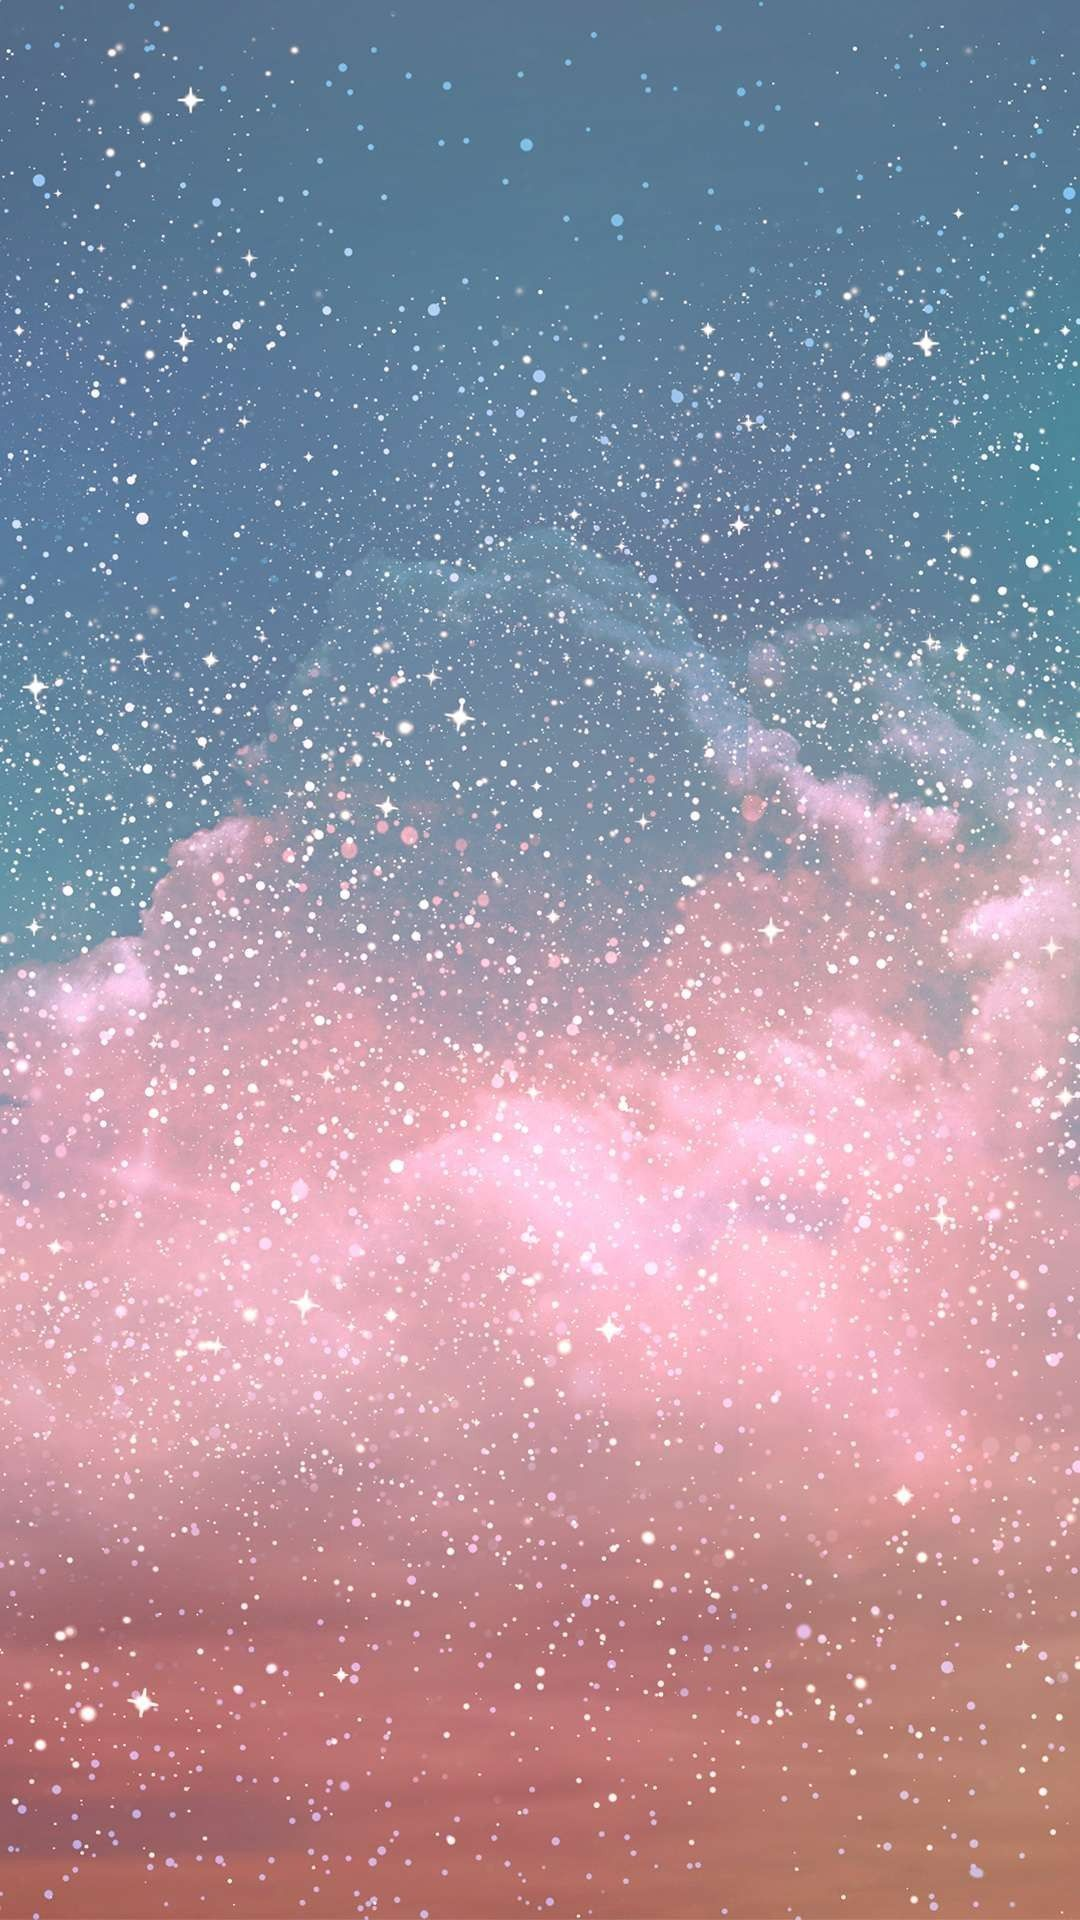 List Of Pinterest Pink Wallpaper Pictures Pinterest Pink W Iphone Wallpaper Sky Aesthetic Iphone Wallpaper Pretty Wallpapers